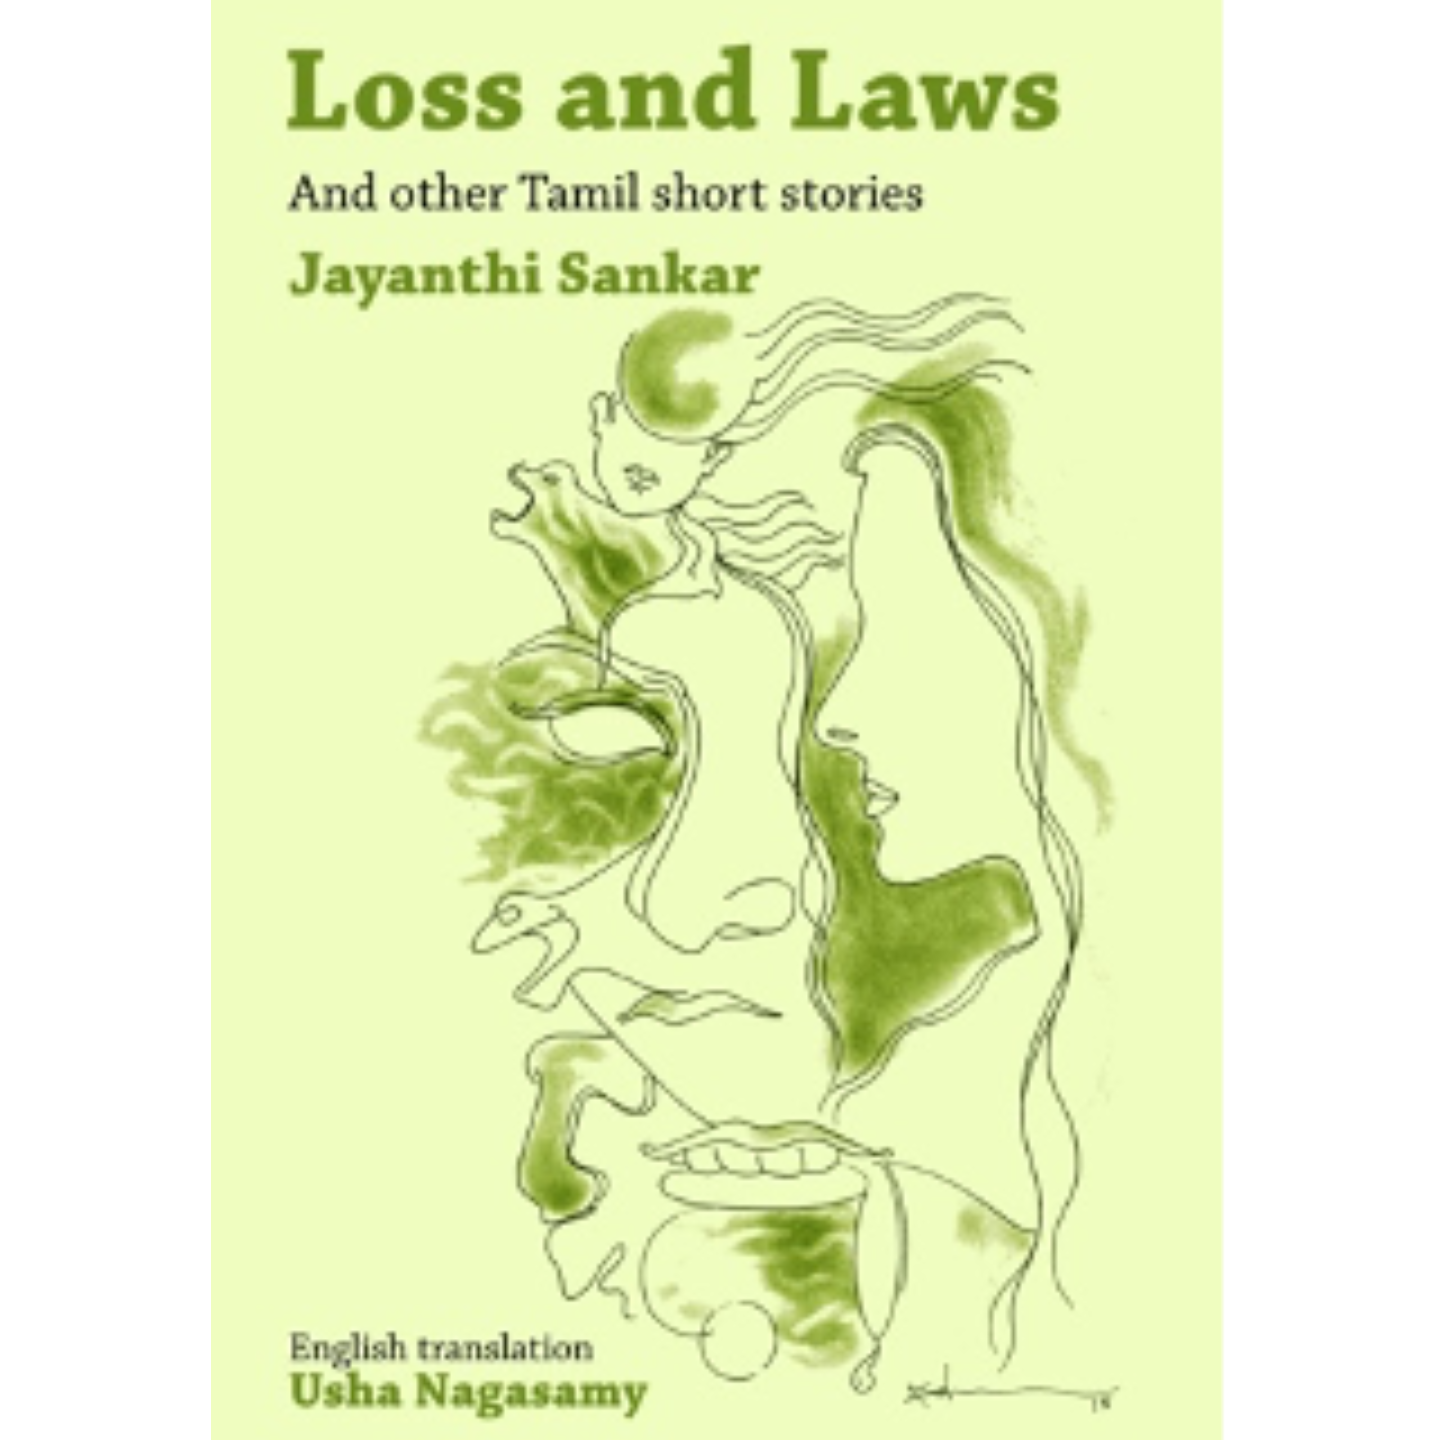 Loss and Laws and Other Tamil Short Stories by Jayanthi Sankar